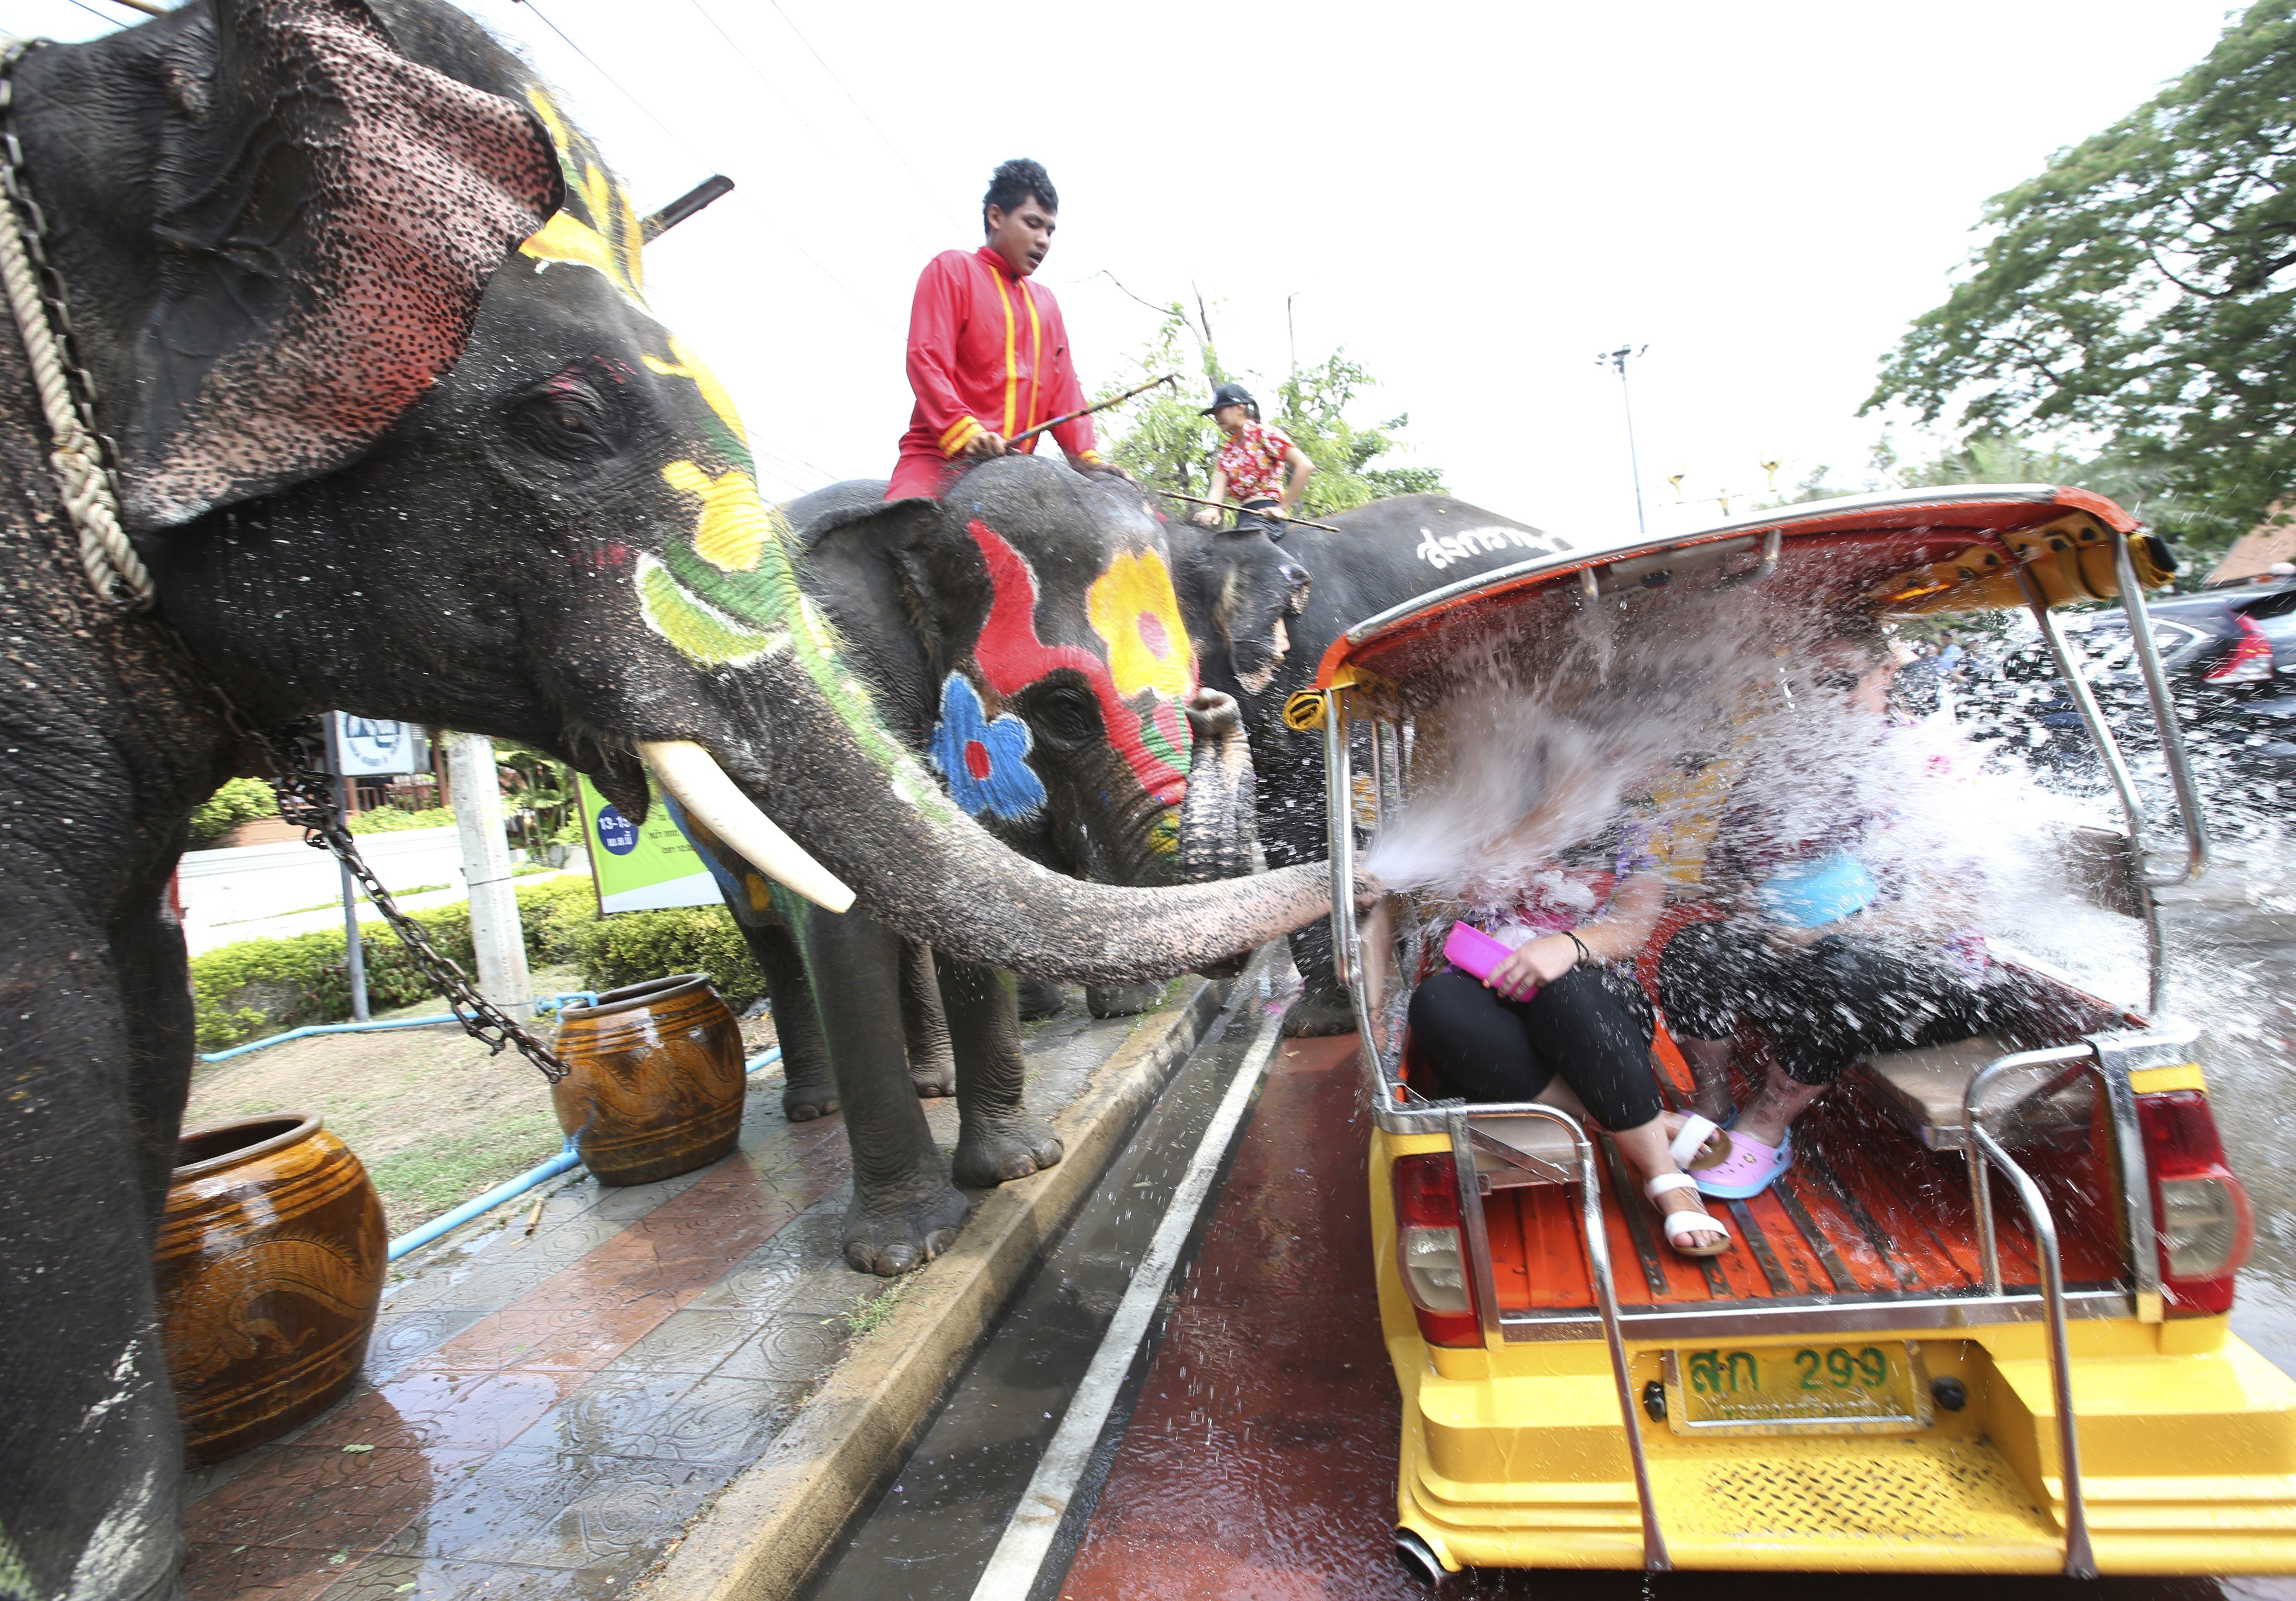 Ayutthaya, Tailandia. Tourists on a tuktuk are sprayed with water by elephants during a preview of the Songkran festival, also known as the water festival, at the world heritage park.